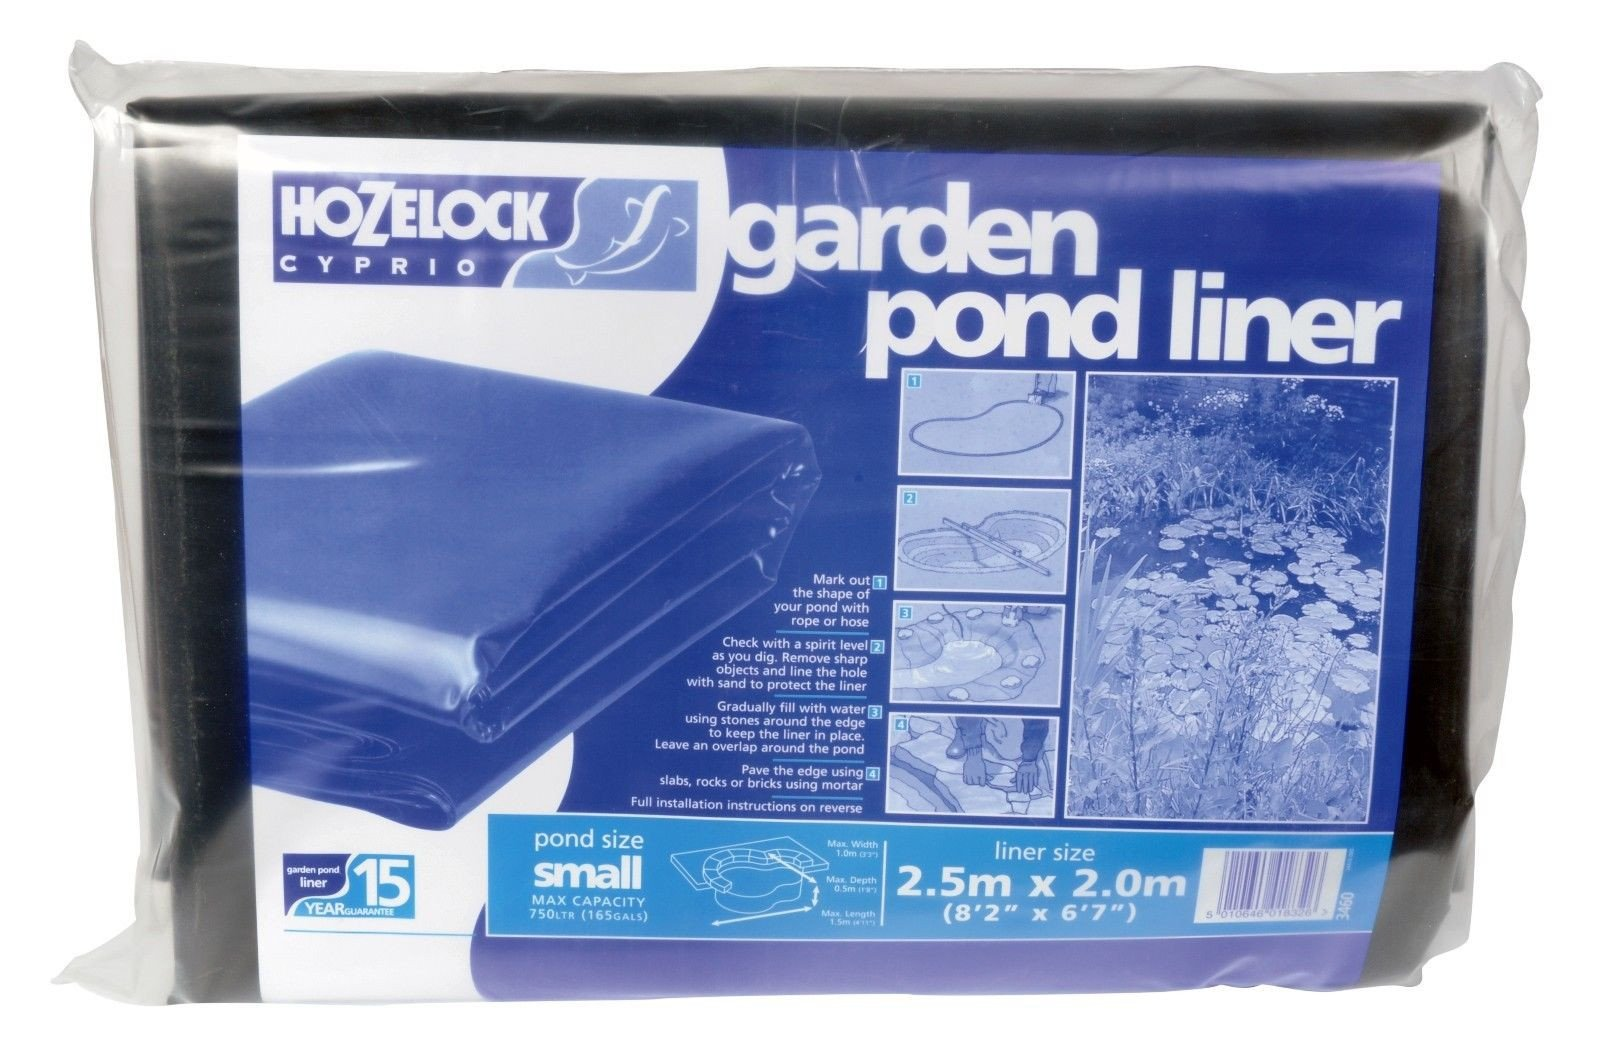 PVC Pond Liner 13 Foot 2 Inches X 9 Foot 10 Inches by Hozelock